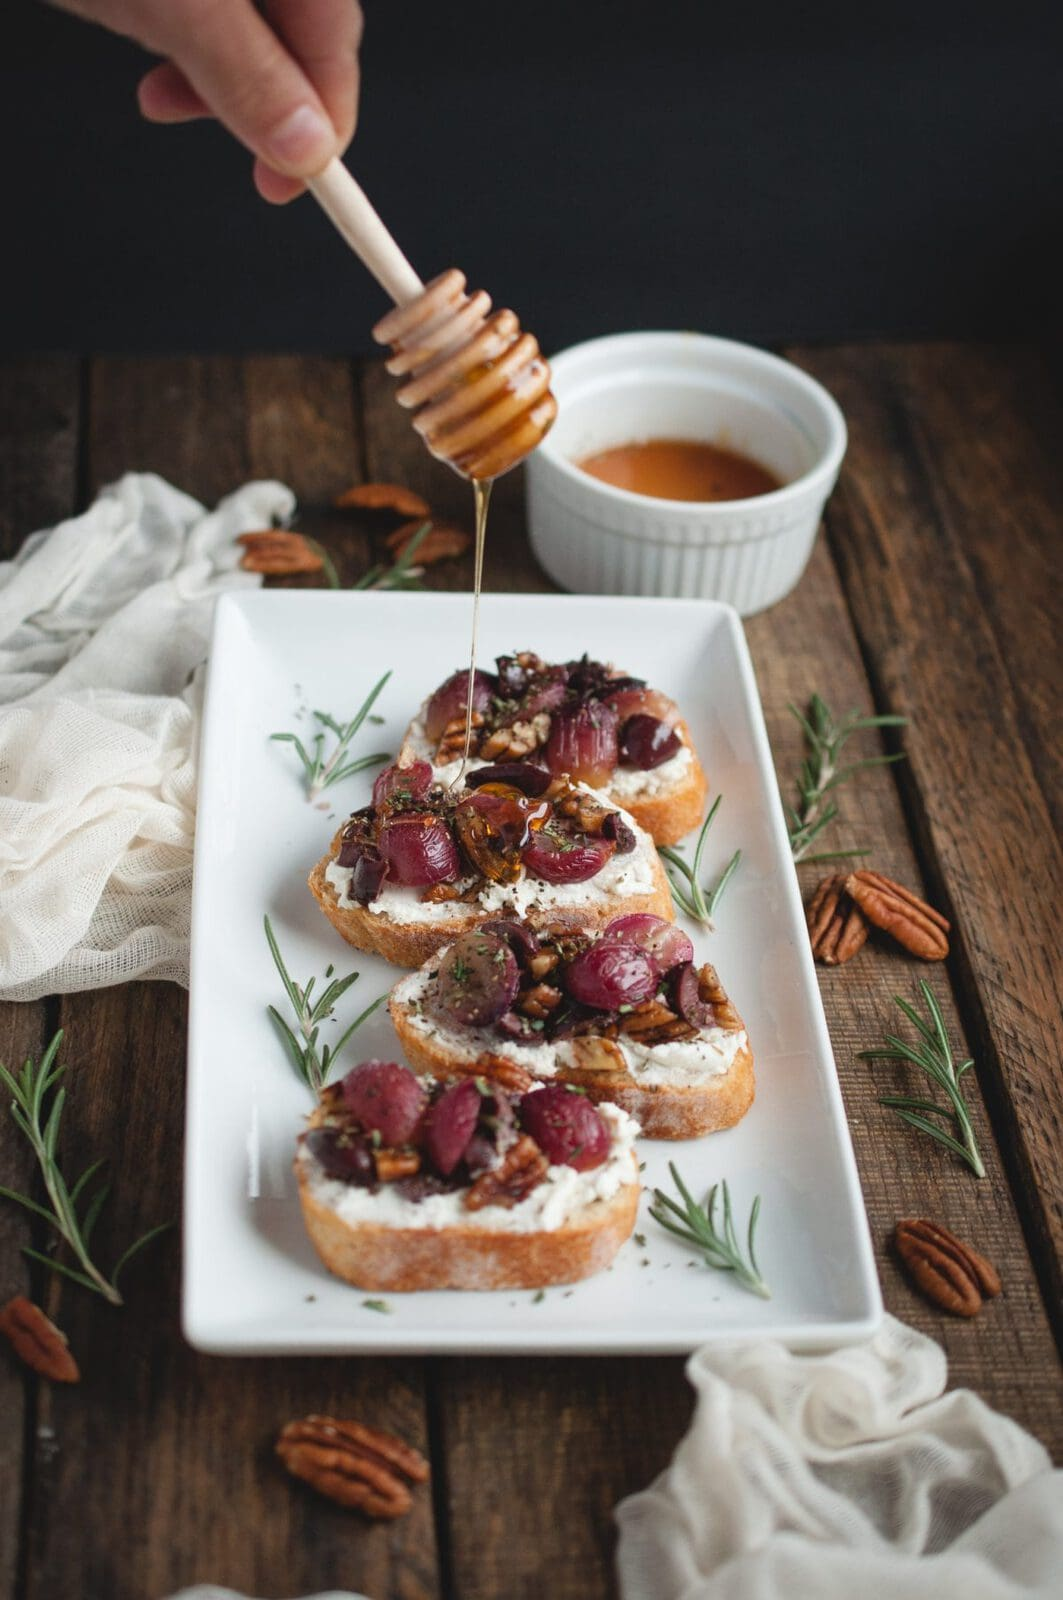 Hand drizzling honey over Crostini with Roasted Grapes, Goat Cheese, and Pecans